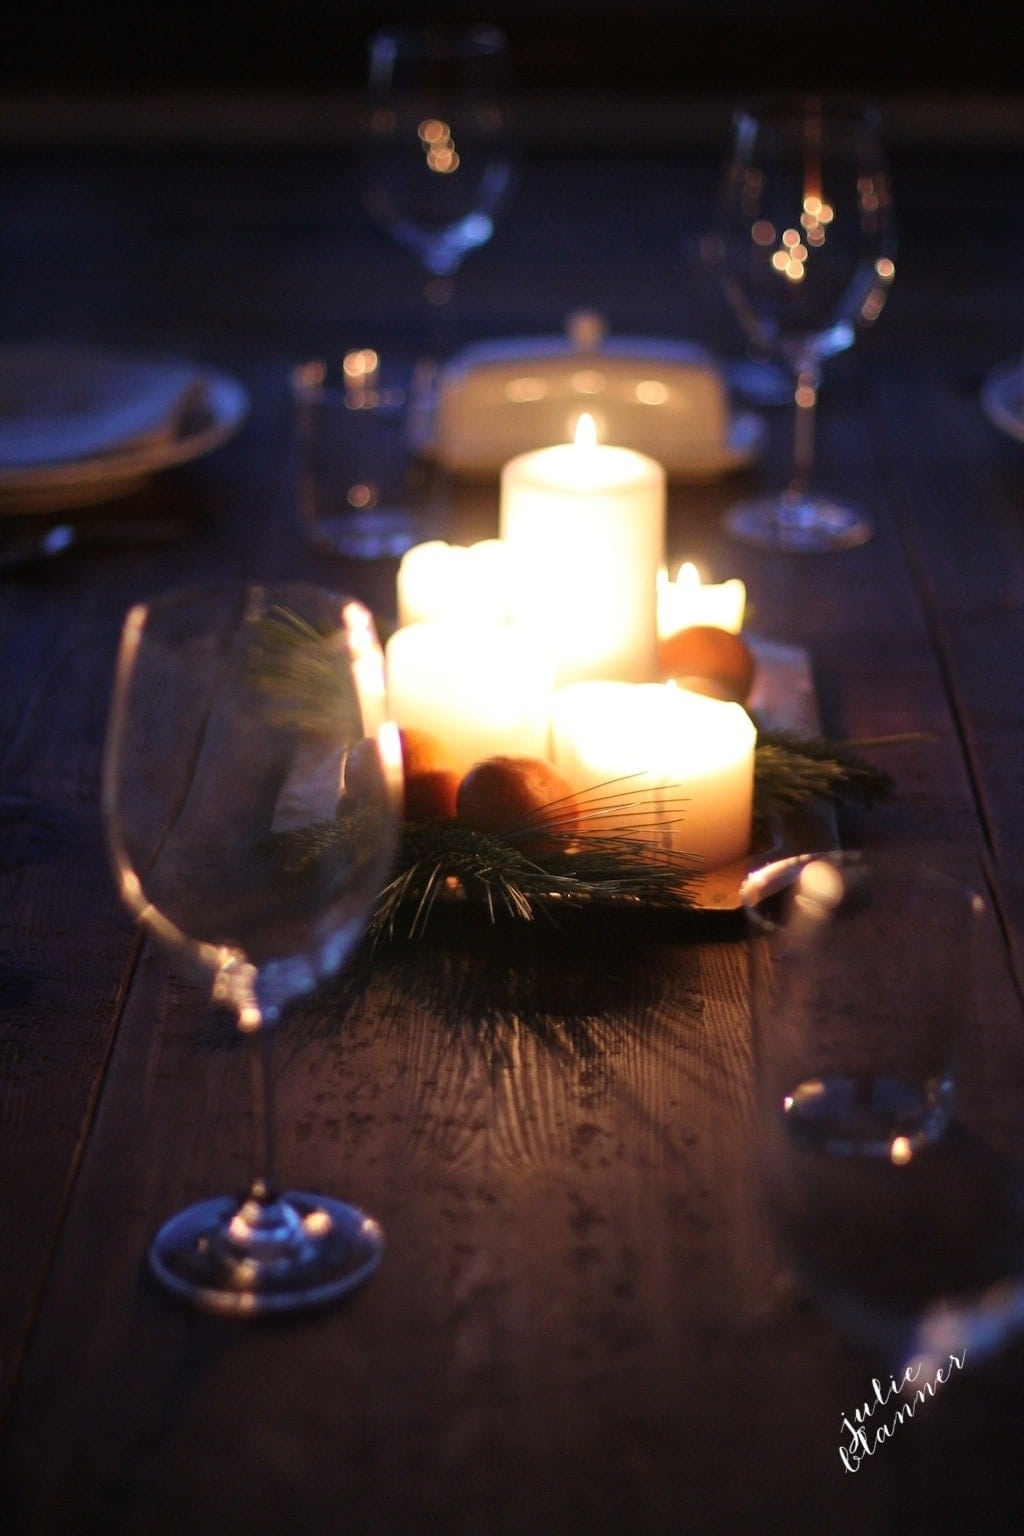 Candlelight Christmas dinner - a gorgeous & unexpected centerpiece you can create in just a few minutes